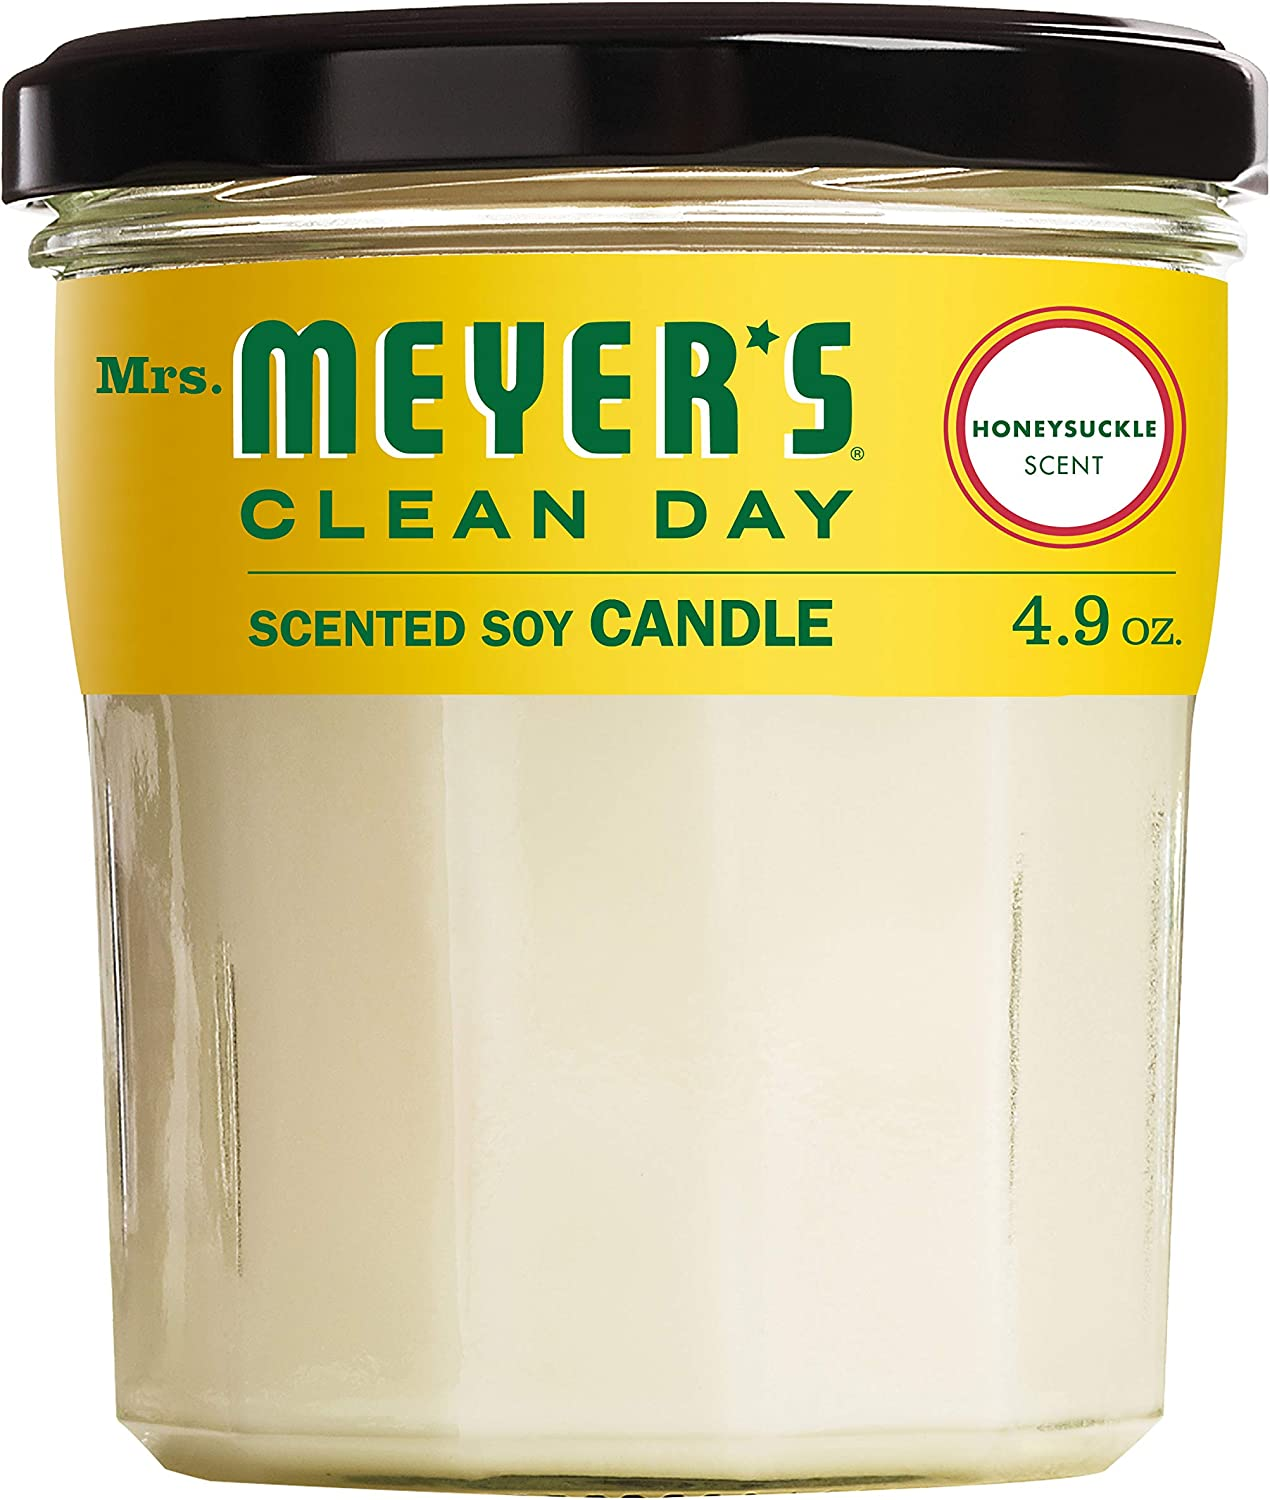 Mrs. Meyer's Clean Day Scented Soy Aromatherapy Candle, 35 Hour Burn Time, Made with Soy Wax, Honeysuckle, 4.9 oz